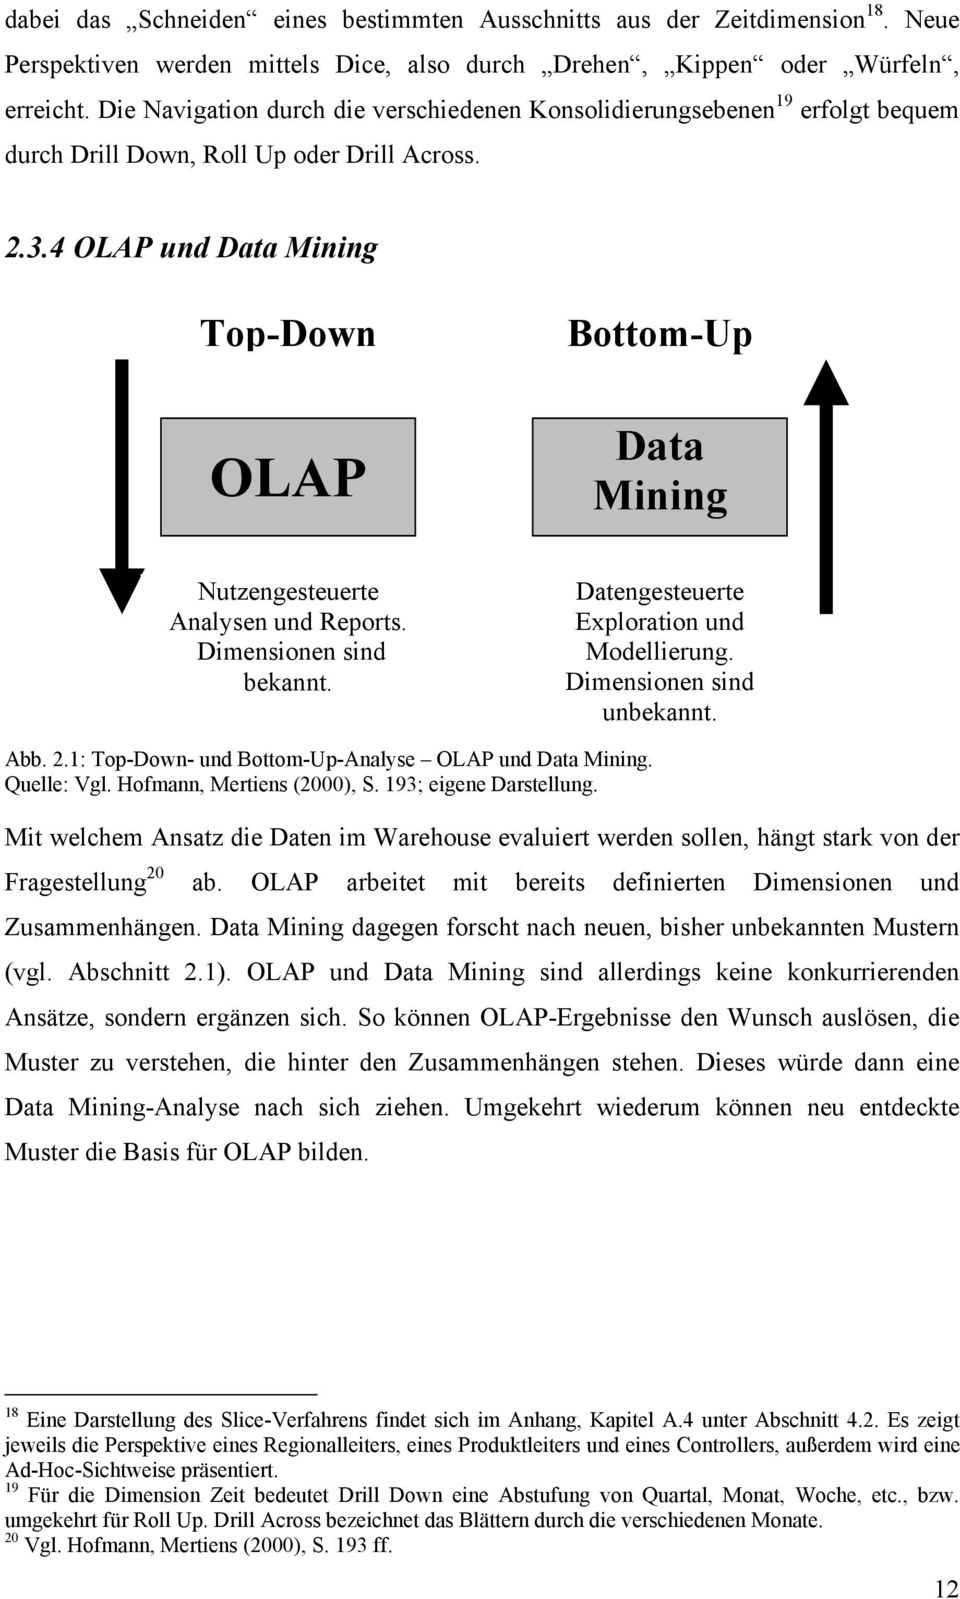 4 OLAP und Data Mining Top-Down OLAP Bottom-Up Data Mining Nutzengesteuerte Analysen und Reports. Dimensionen sind bekannt. Datengesteuerte Exploration und Modellierung. Dimensionen sind unbekannt.